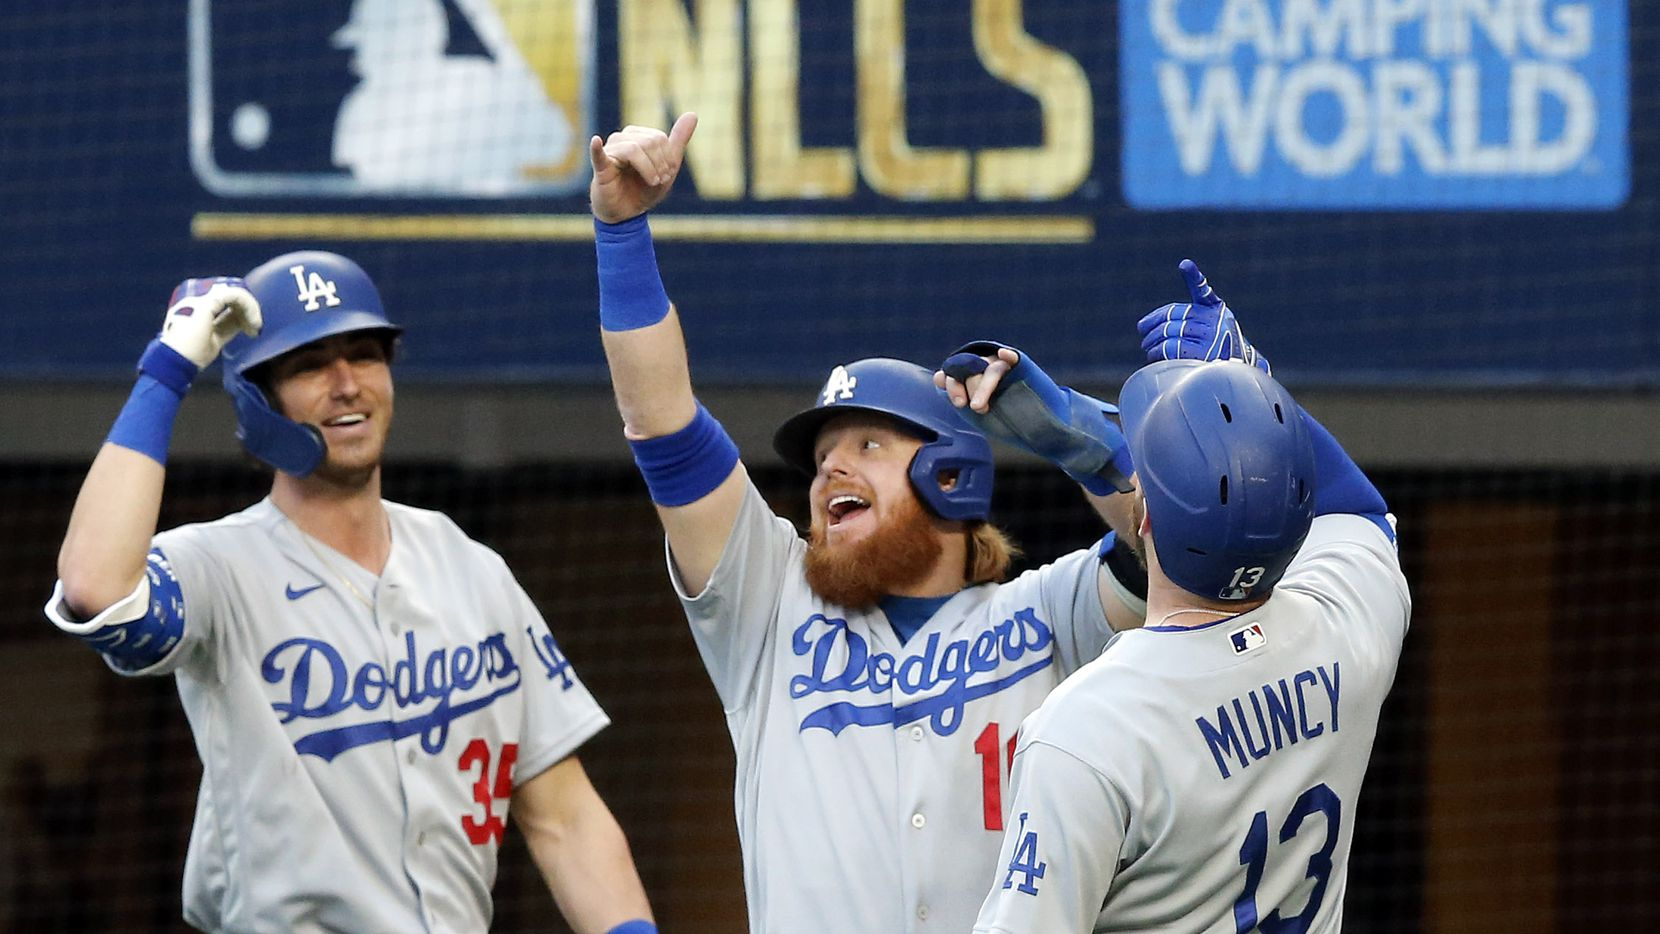 Los Angeles Dodgers Justin Turner (10) and Cody Bellinger (35) celebrate Max Muncy's (13) first inning grand slam in Game 3 of the National League Championship Series at Globe Life Field in Arlington, Wednesday, October 14, 2020.